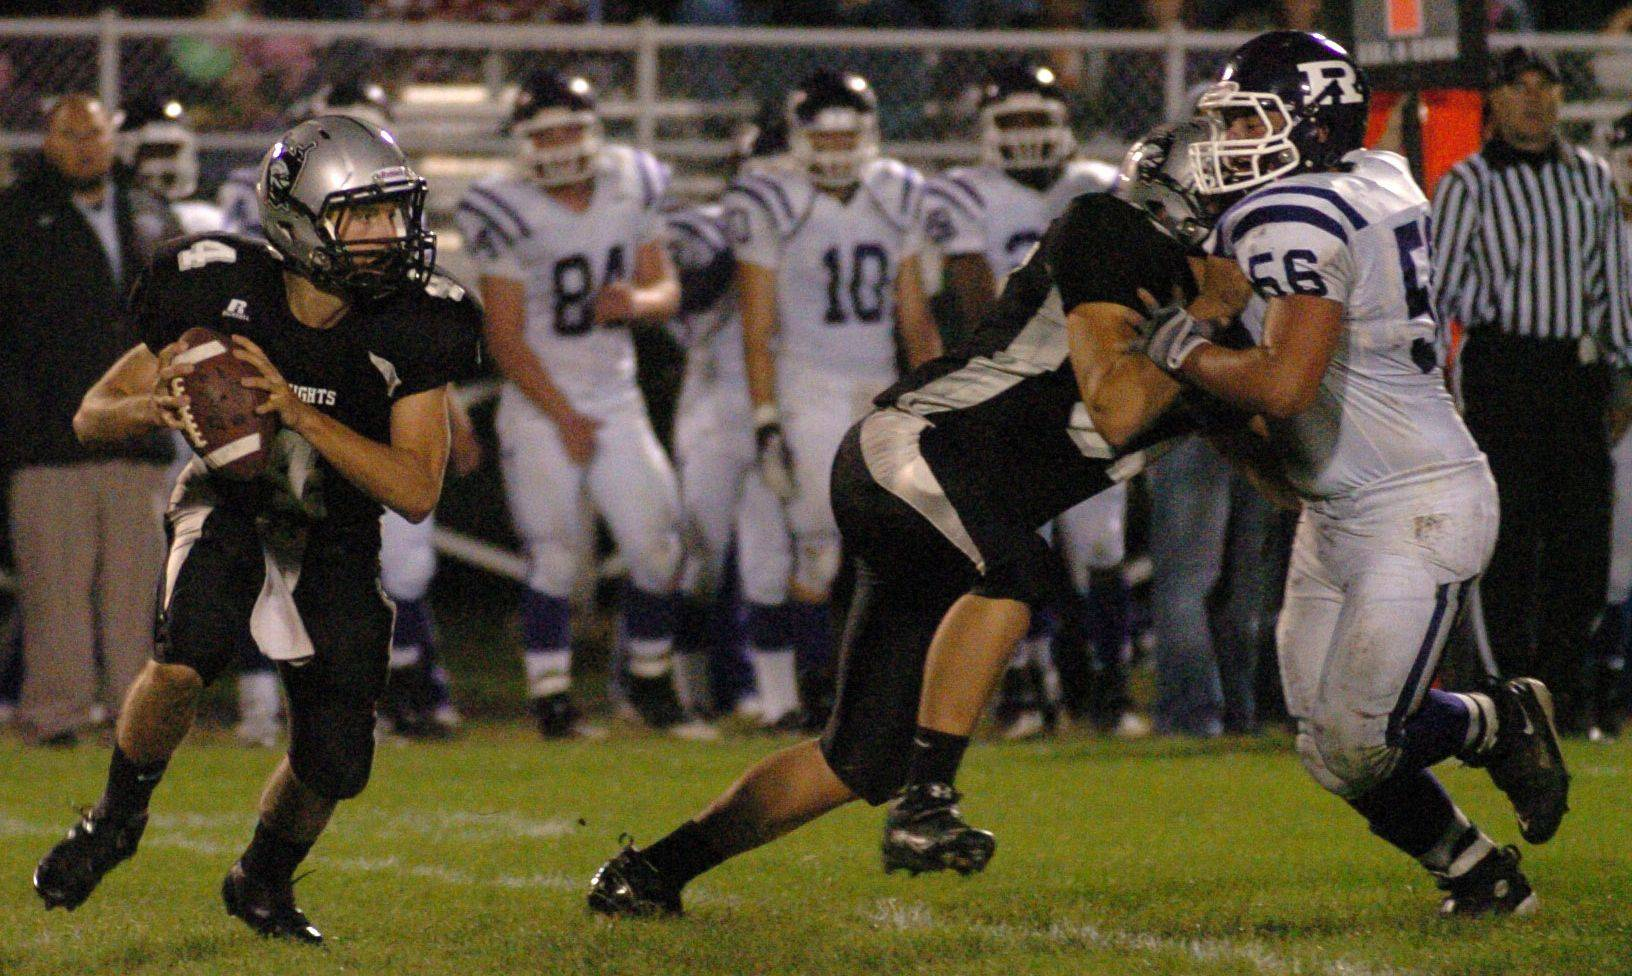 Kaneland quarterback Drew David threw for 260 yards and 3 touchdowns in the first half Friday against Rochelle.